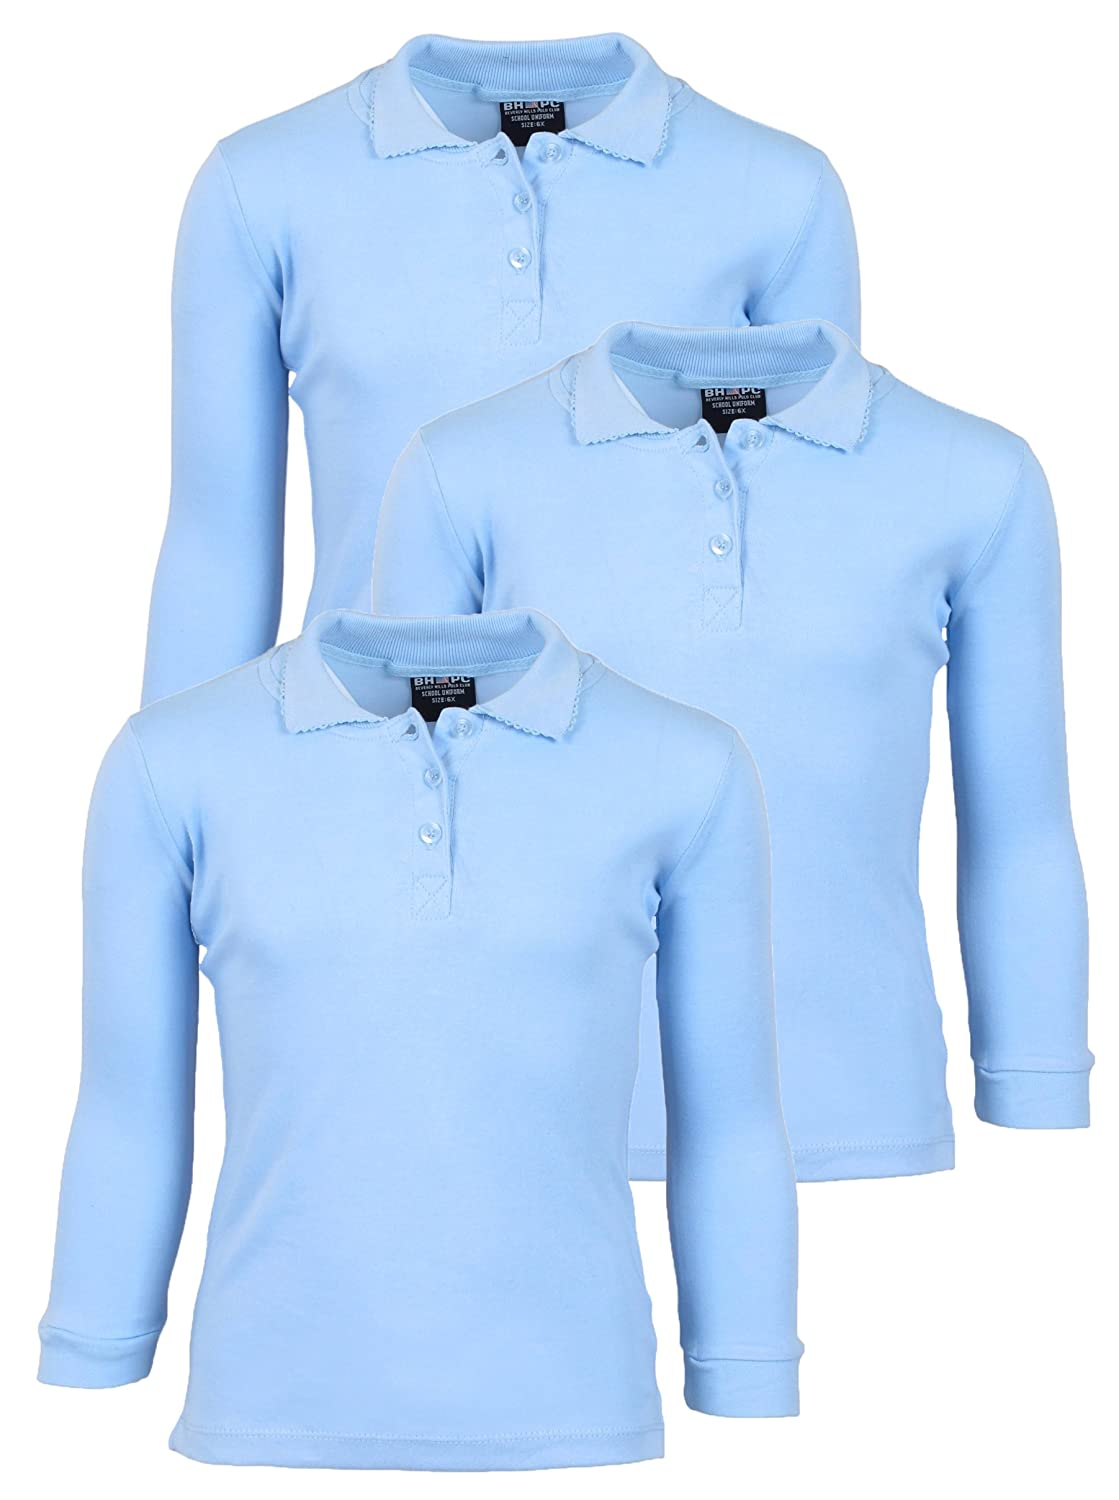 e111ec6db LONG LASTING - Strong and Durable polo shirts for girls. STYLISH DESIGN -  Interlock Polo with Picot edge and Rib knit shirt collar  Rib knit Sleeve  cuffs